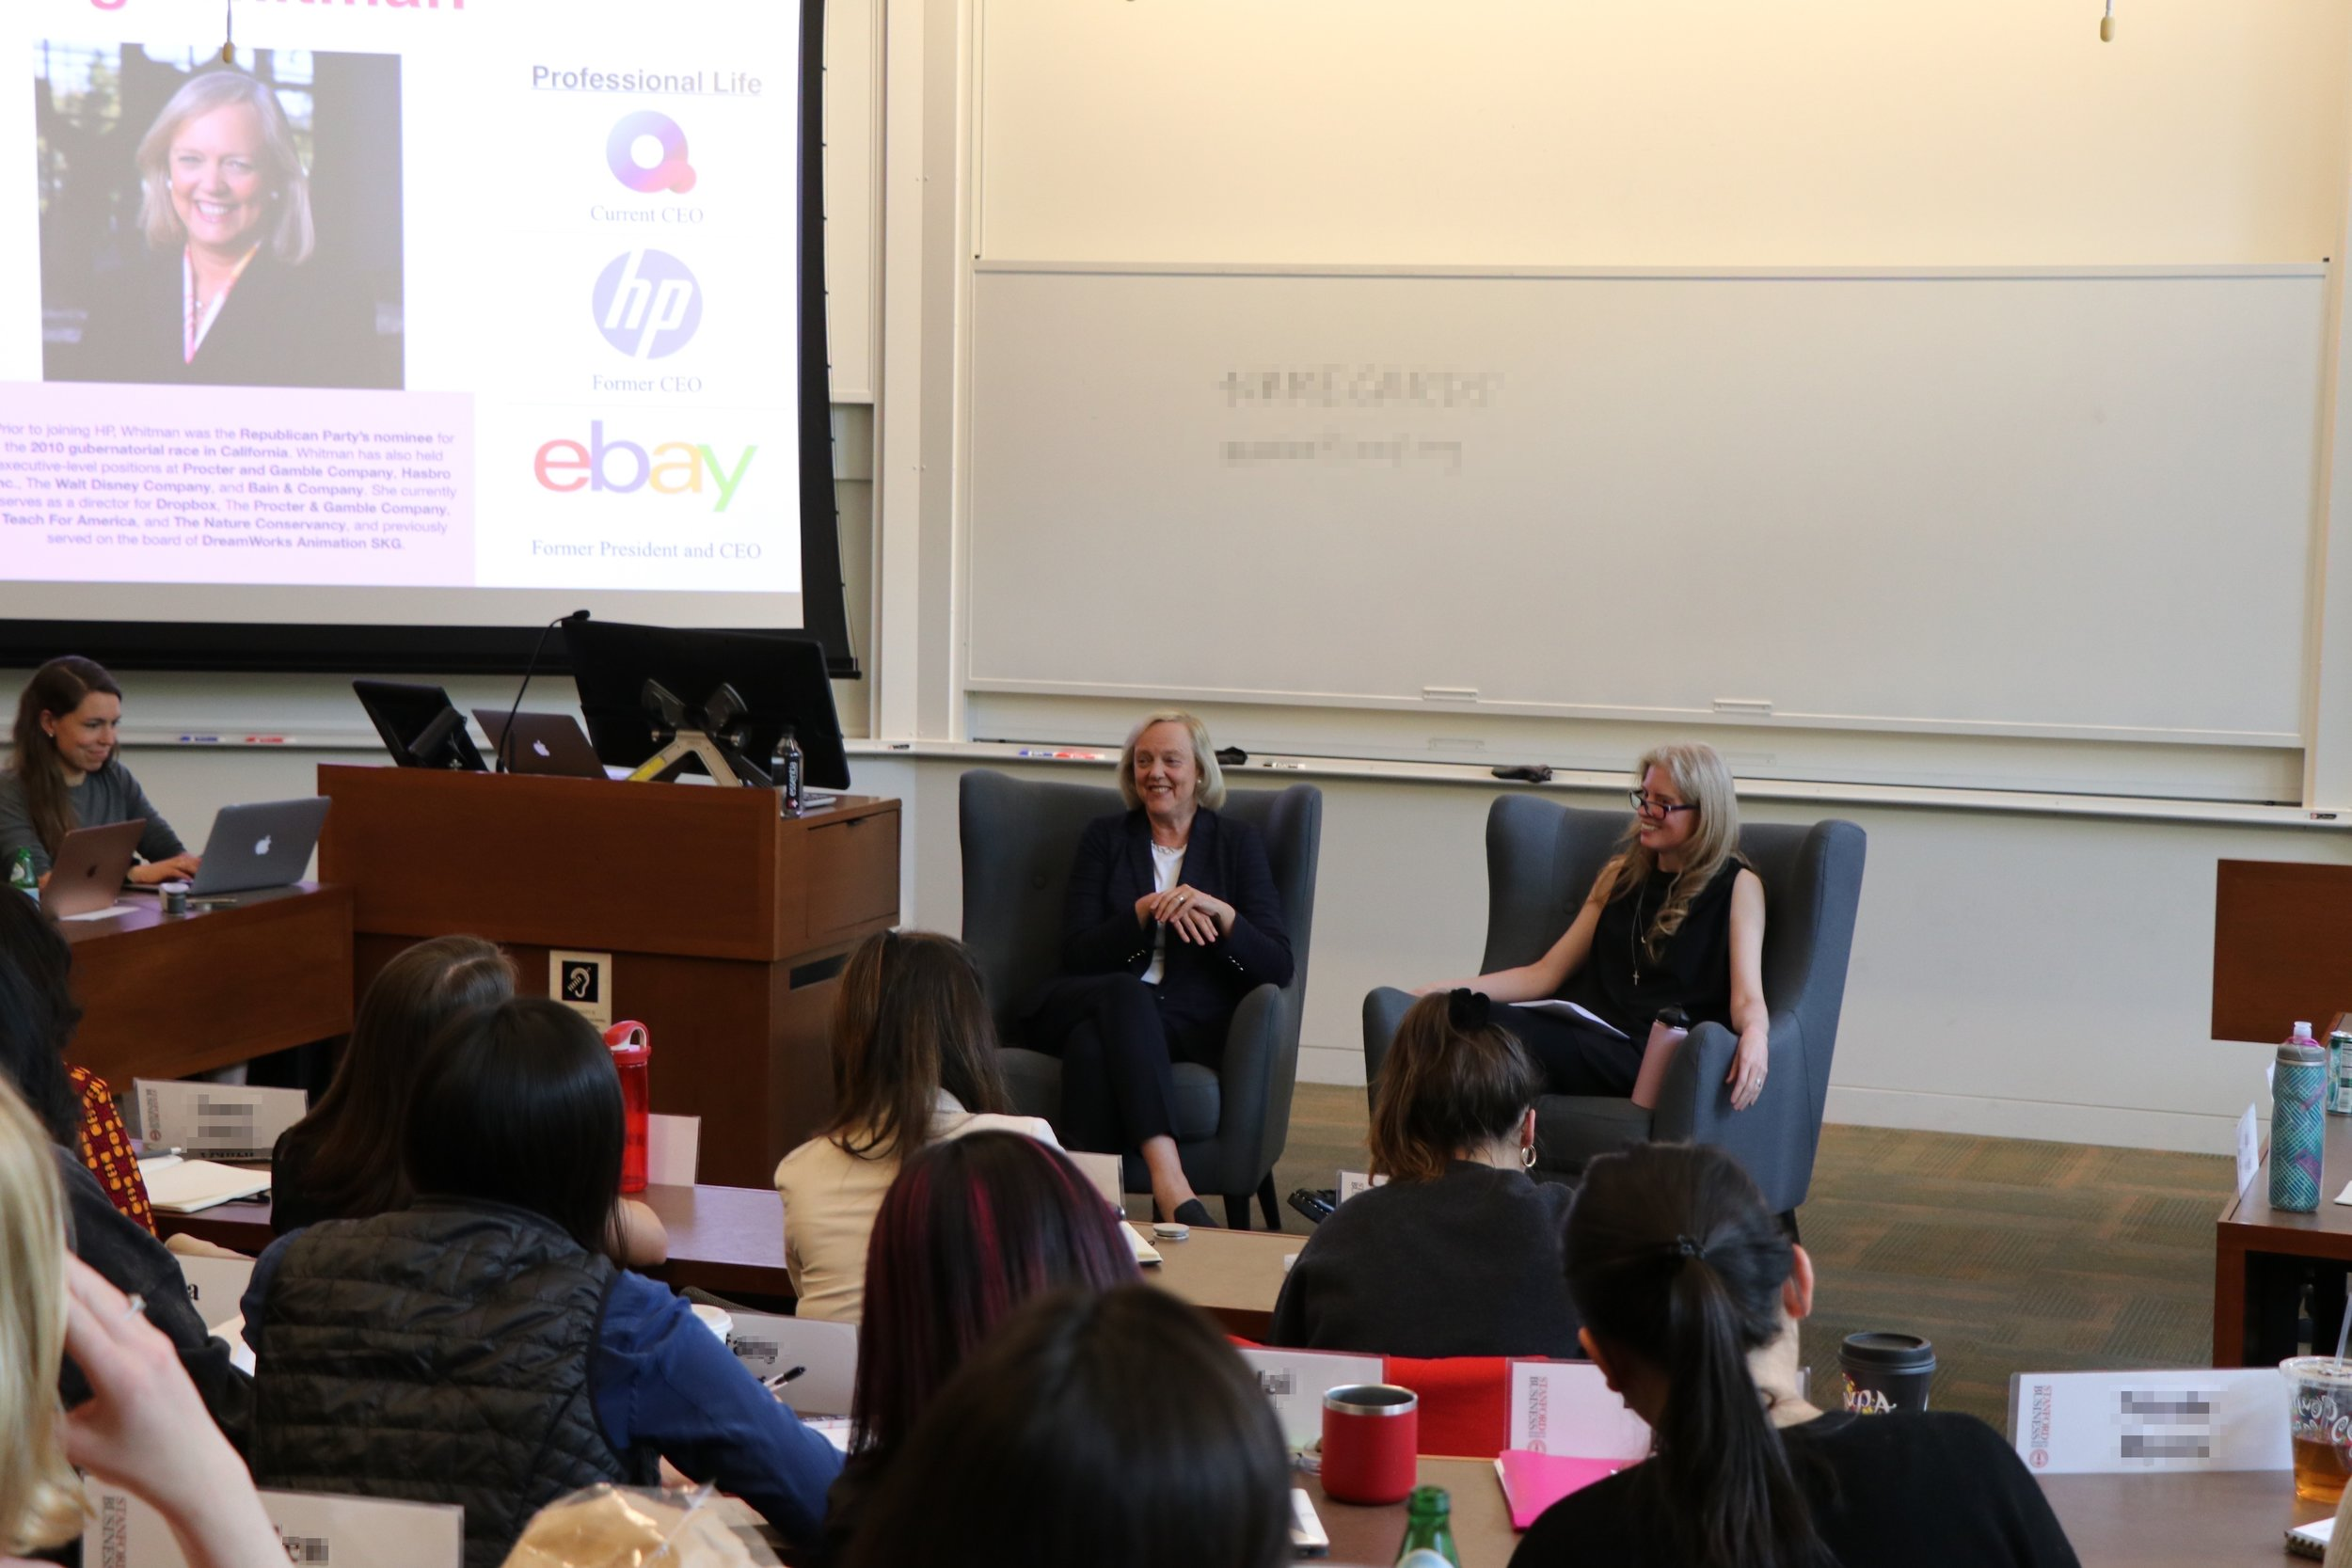 Meg Whitman in conversation with Laura Arrillaga-Andreessen about women in leadership, living your purpose and sticking to your values throughout your career.